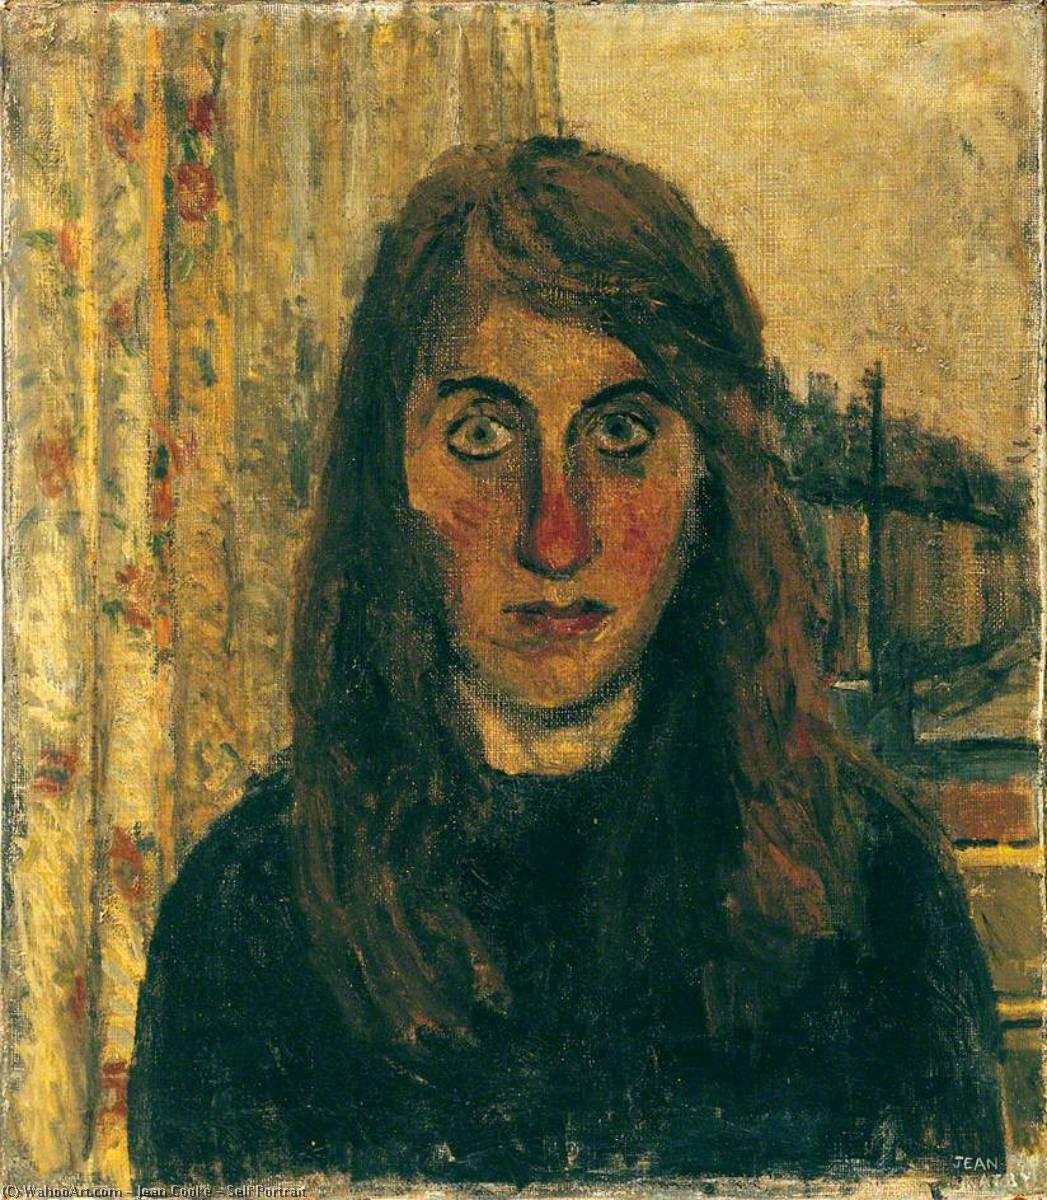 Wikioo.org - The Encyclopedia of Fine Arts - Painting, Artwork by Jean Cooke - Self Portrait